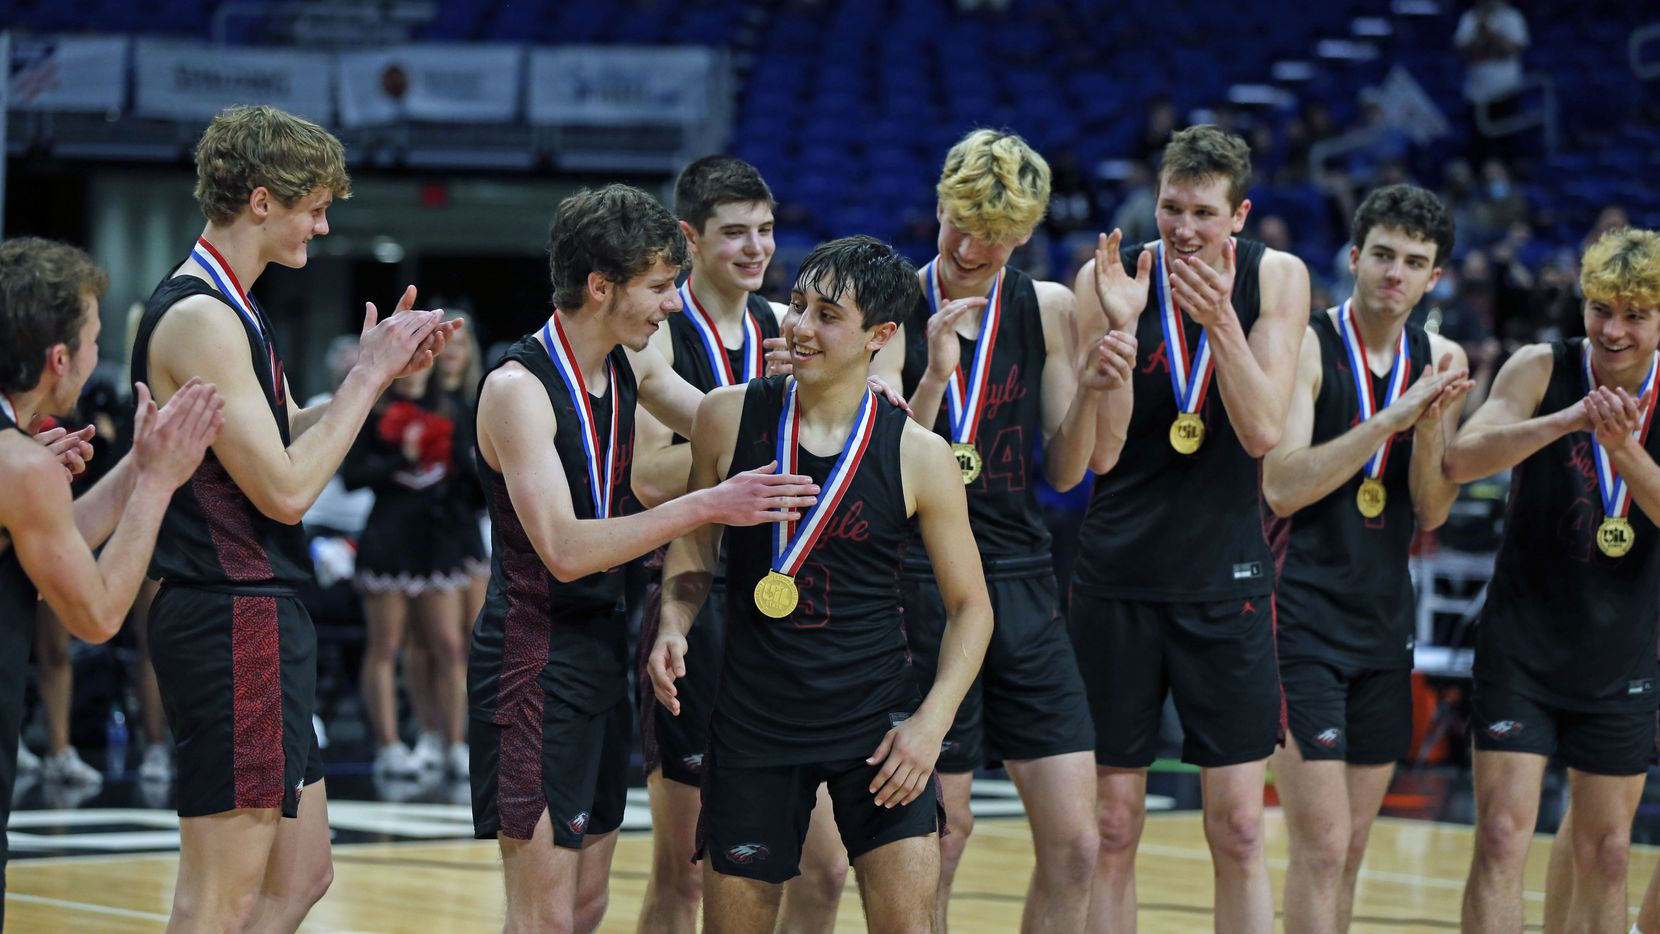 Argyle Skylar McCurry #3 is congratulated after being awarded most valuable player of the tournament. UIL boys Class 4A basketball state championship game between Argyle and Hargrave on Saturday, March 13, 2021 at the Alamodome.